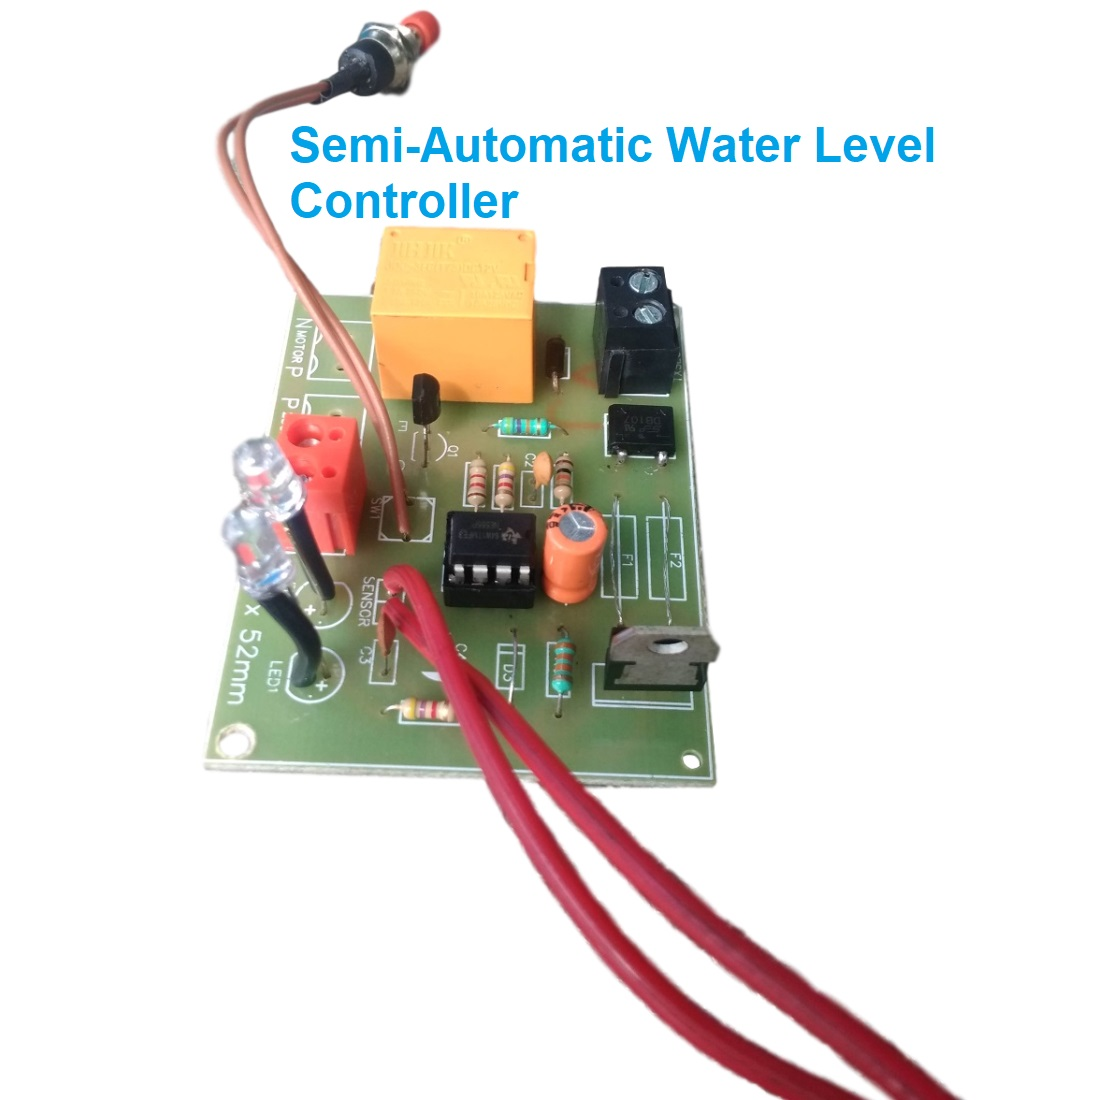 Semi-Automatic Water Level Controller Circuit Project ...